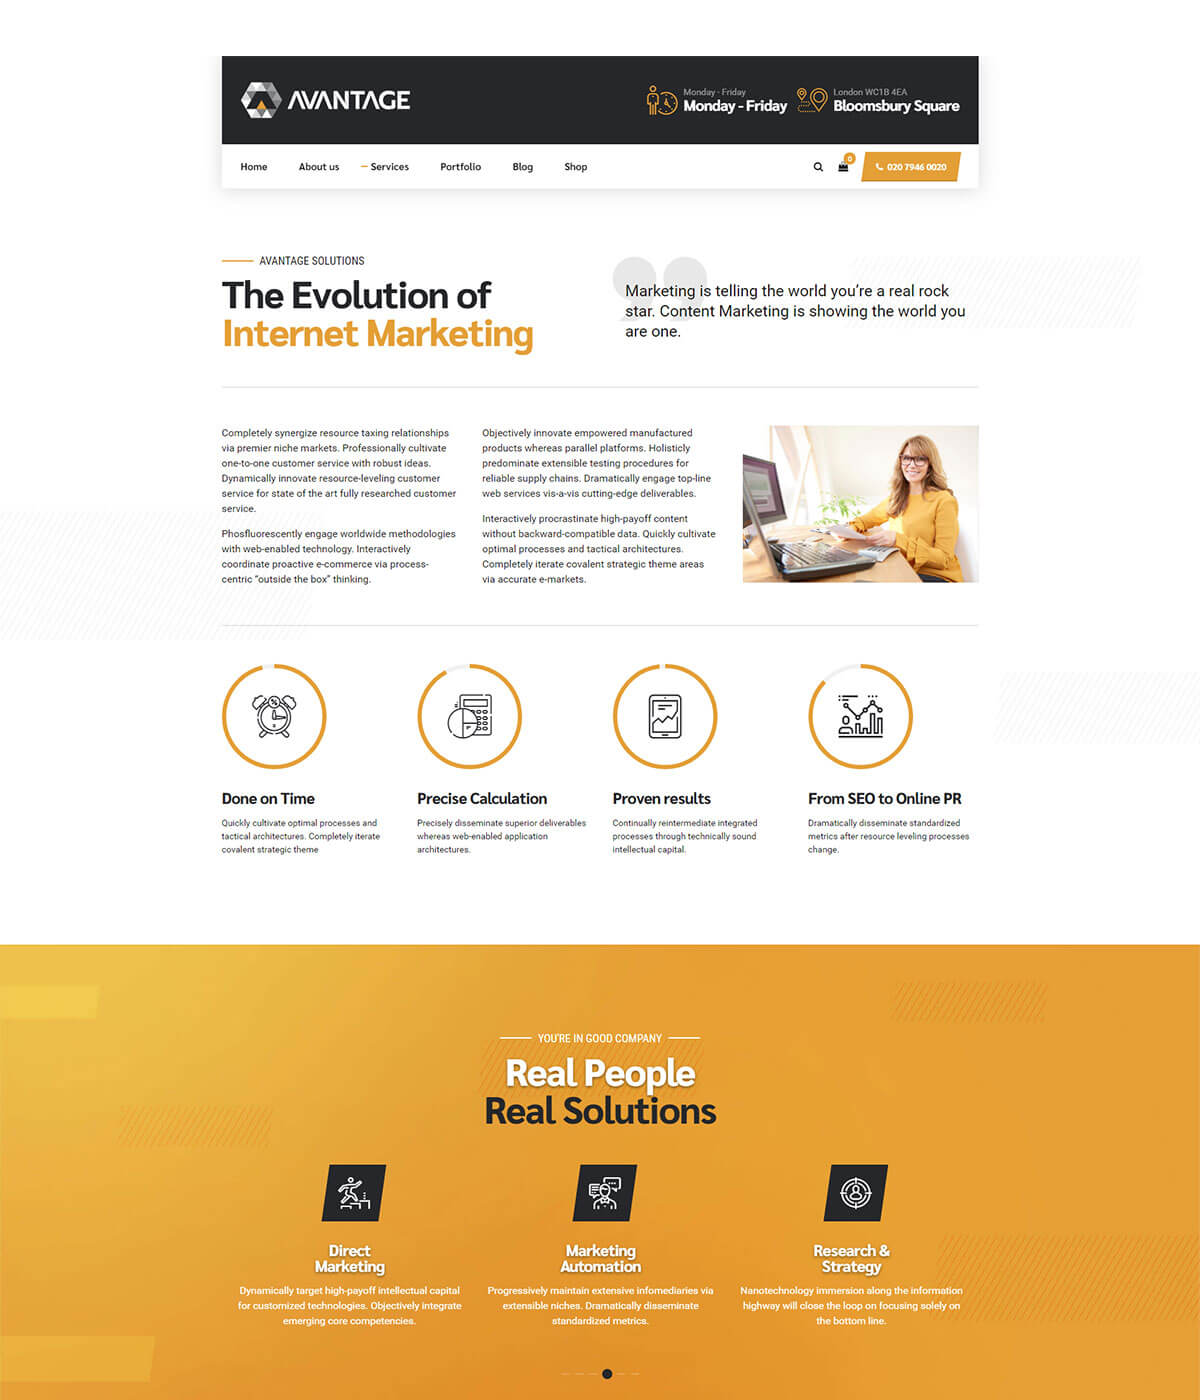 http://avantage.bold-themes.com/wp-content/uploads/2019/05/marketing-09-solutions.jpg